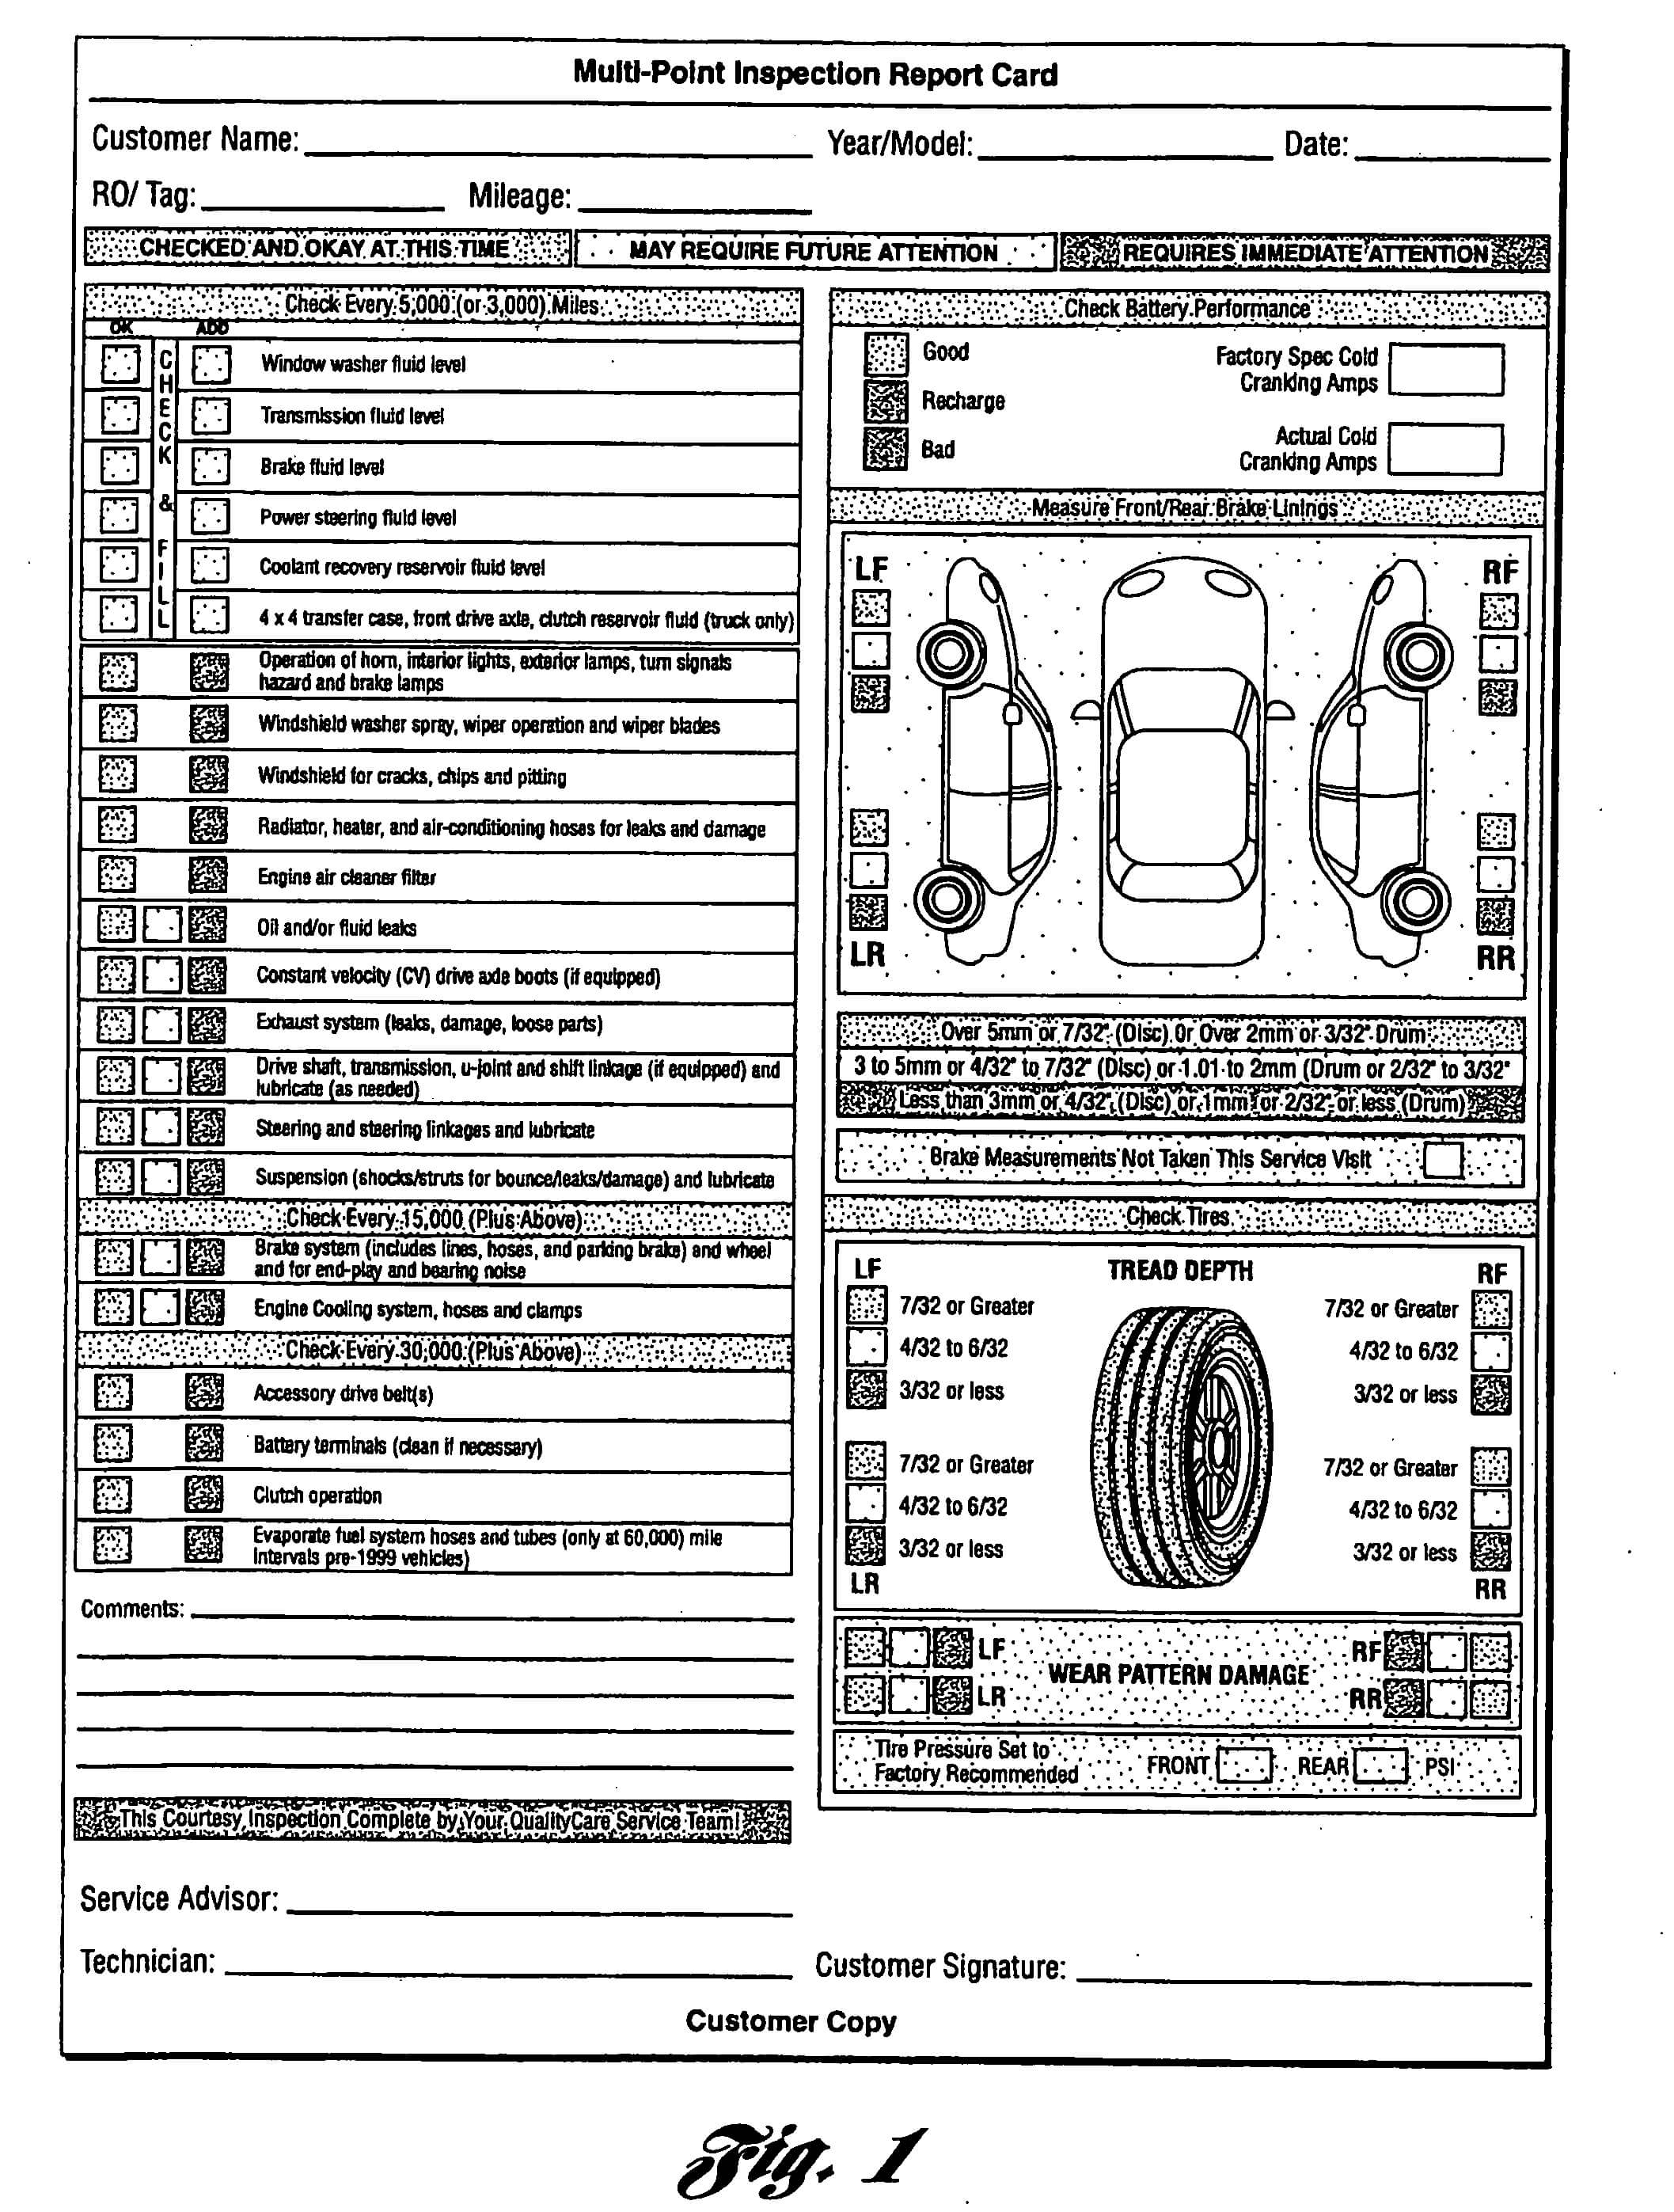 Multi-Point Inspection Report Card As Recommendedford with regard to Truck Condition Report Template